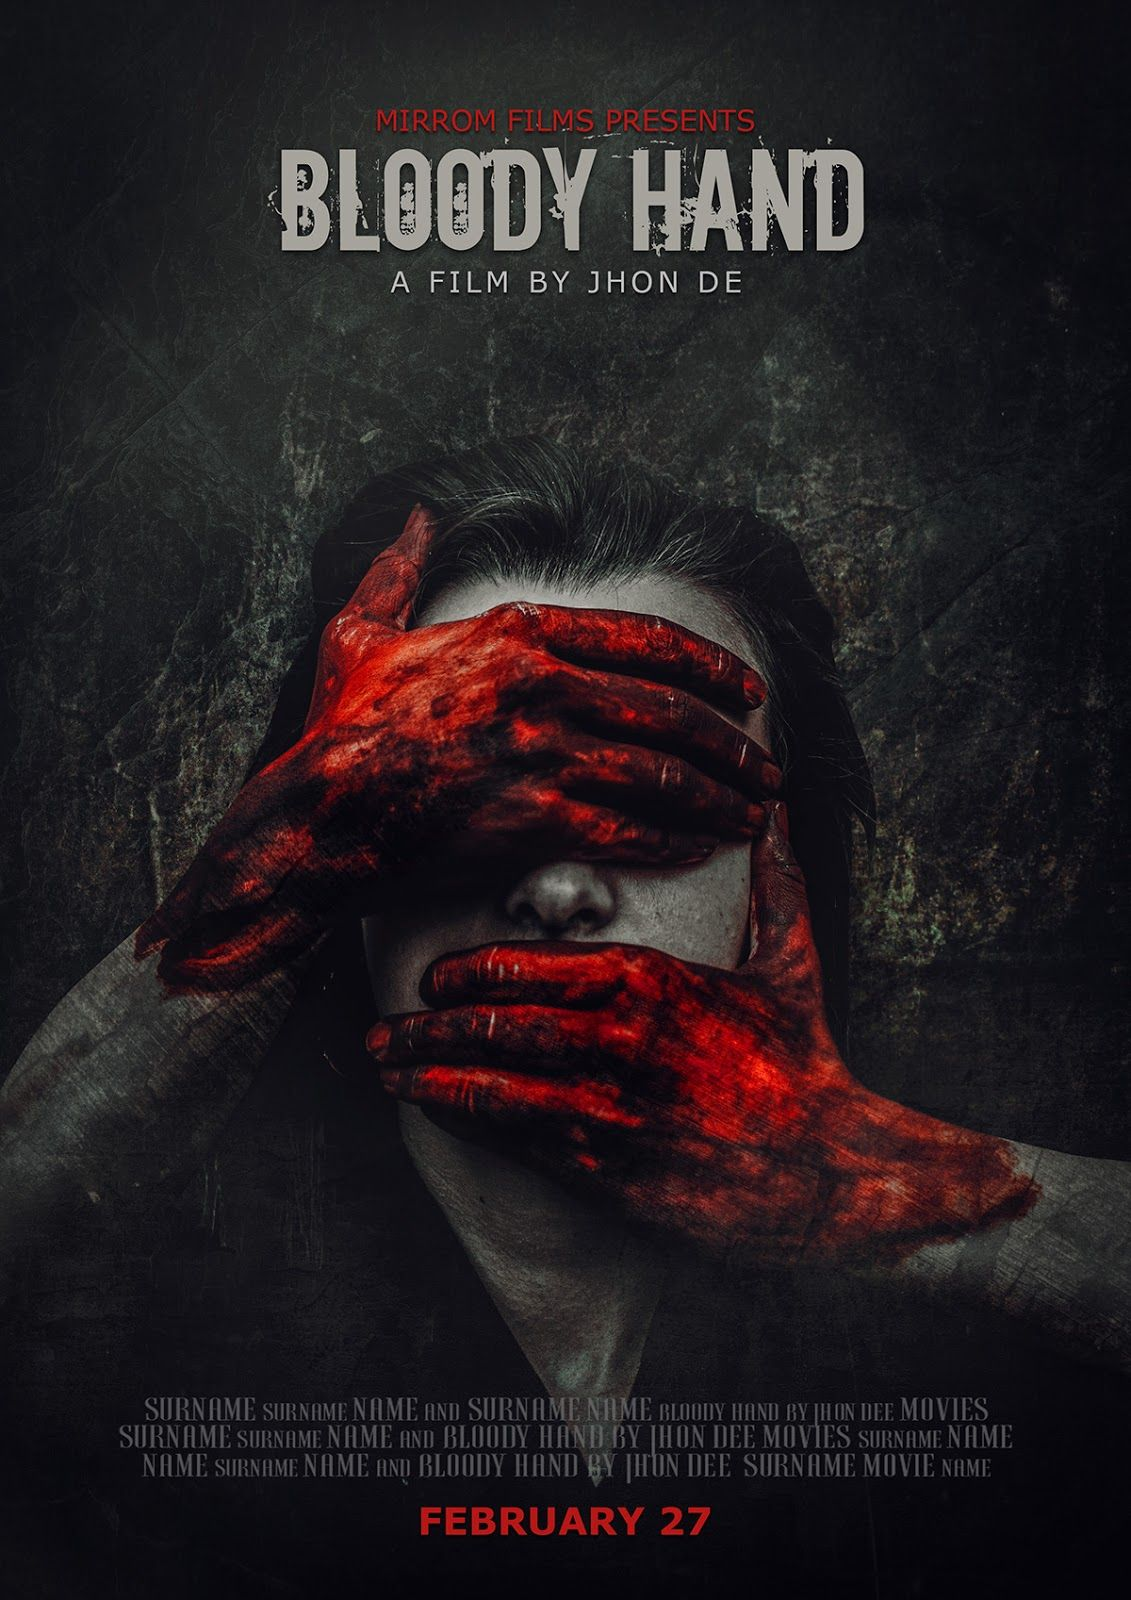 Concept Art Horror Movie Poster Photoshop Tutorial In 2020 Movie Poster Photoshop Movie Posters Horror Movie Posters